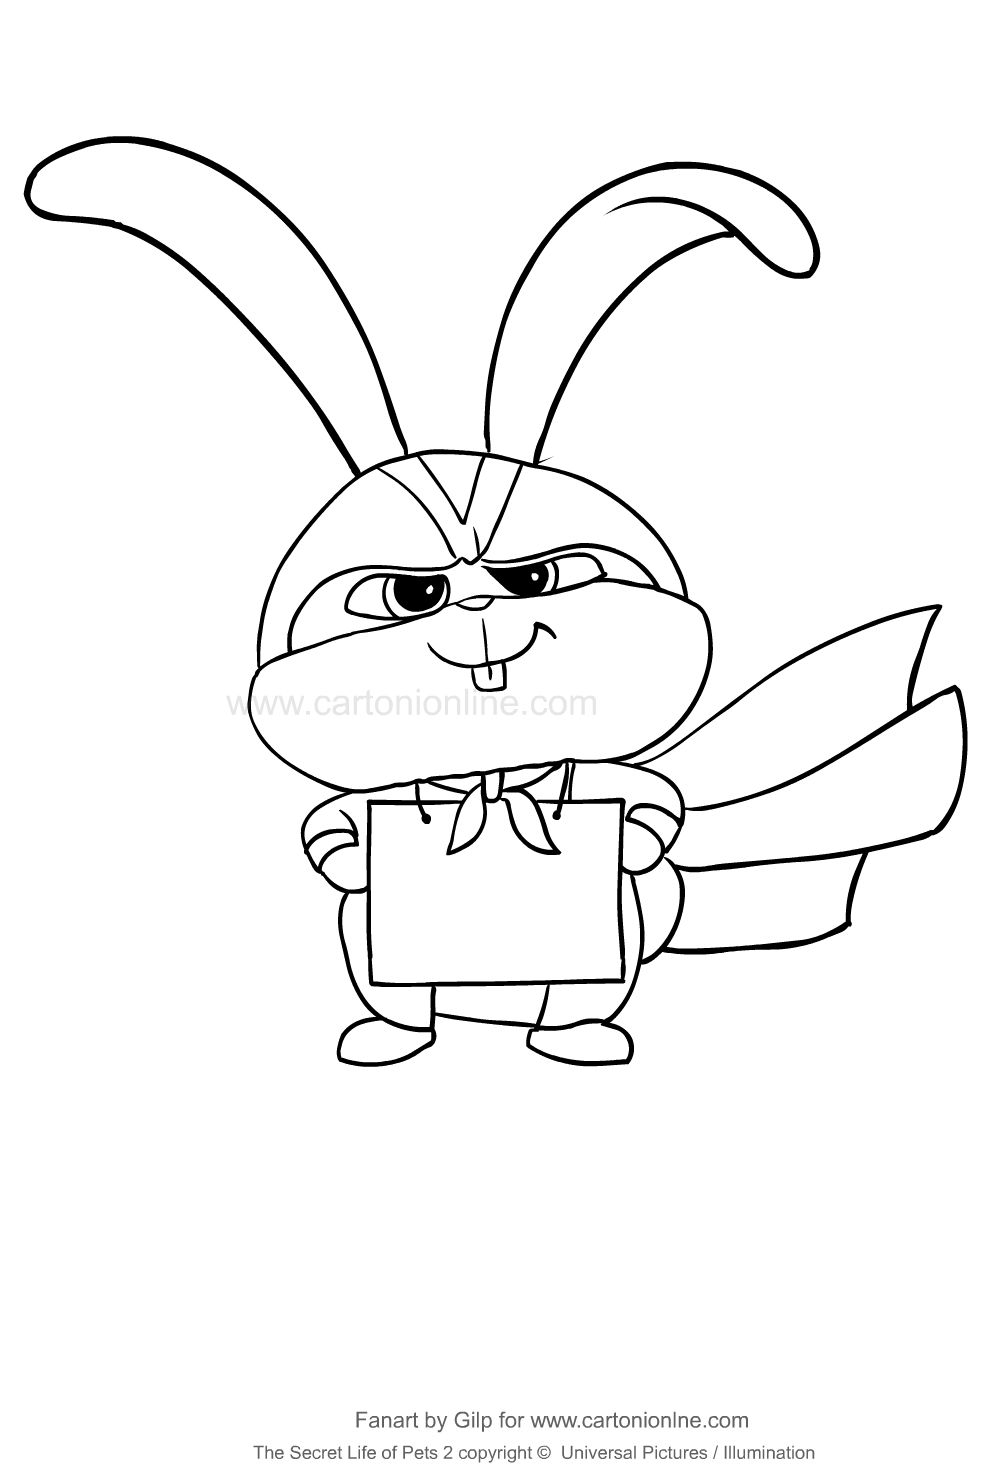 Snowball From The Secret Life Of Pets 2 Coloring Page To Print And Coloring Pets Drawing Secret Life Of Pets Ariel Coloring Pages